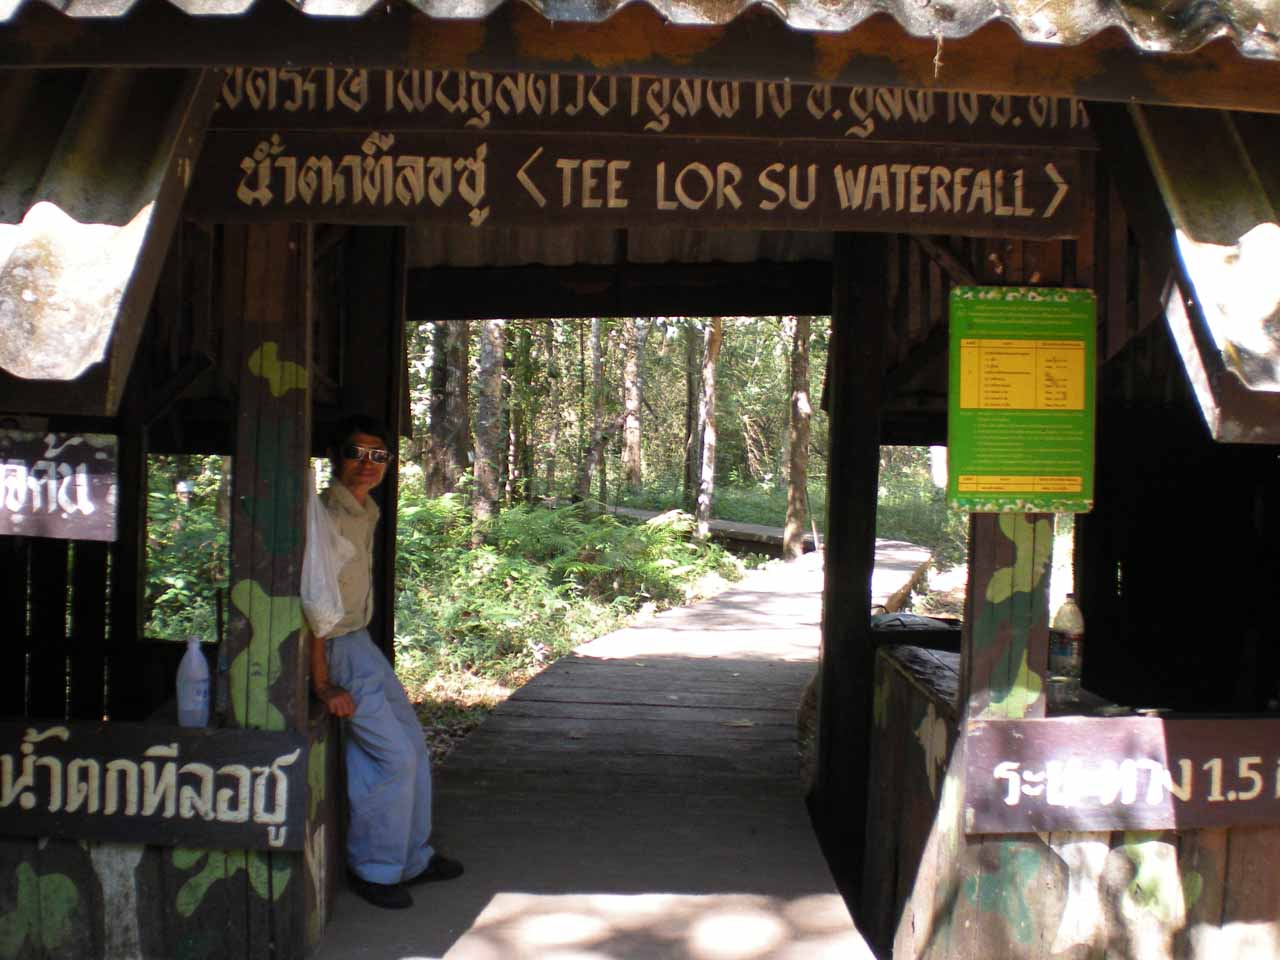 The check point and entrance for the footpath leading to Thi Lo Su Waterfall